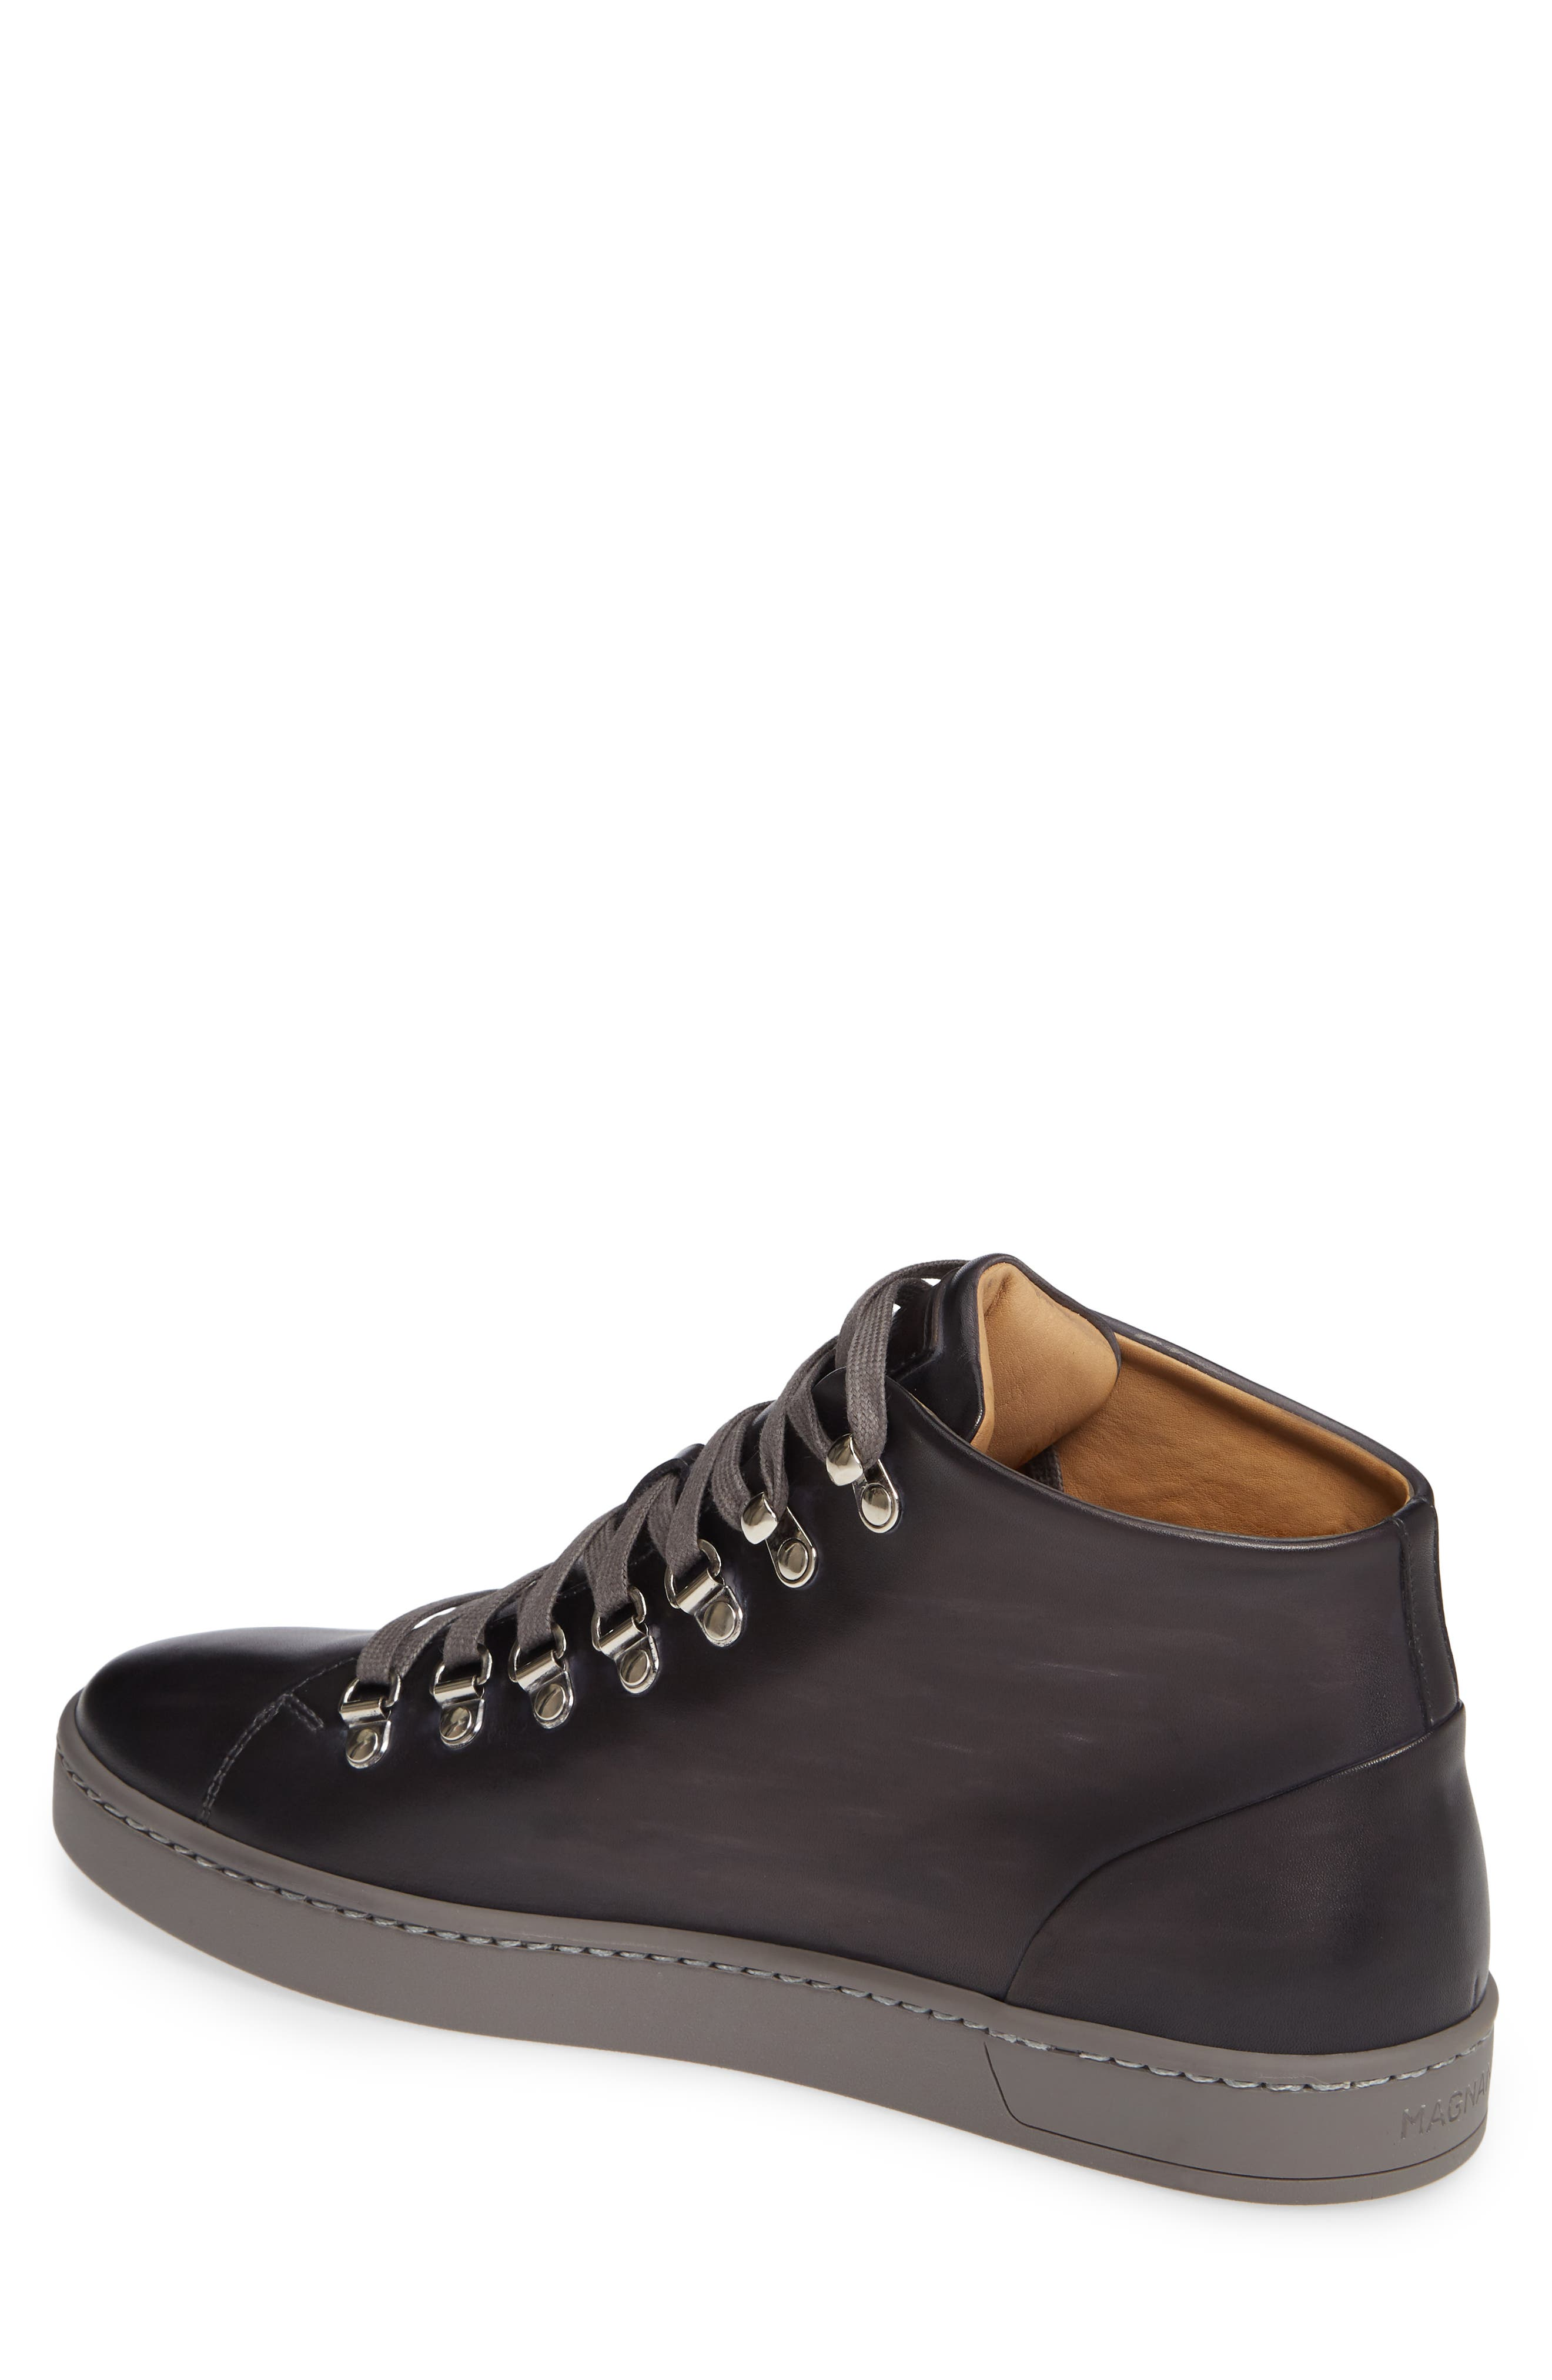 MAGNANNI,                             Rocco Sneaker,                             Alternate thumbnail 2, color,                             020